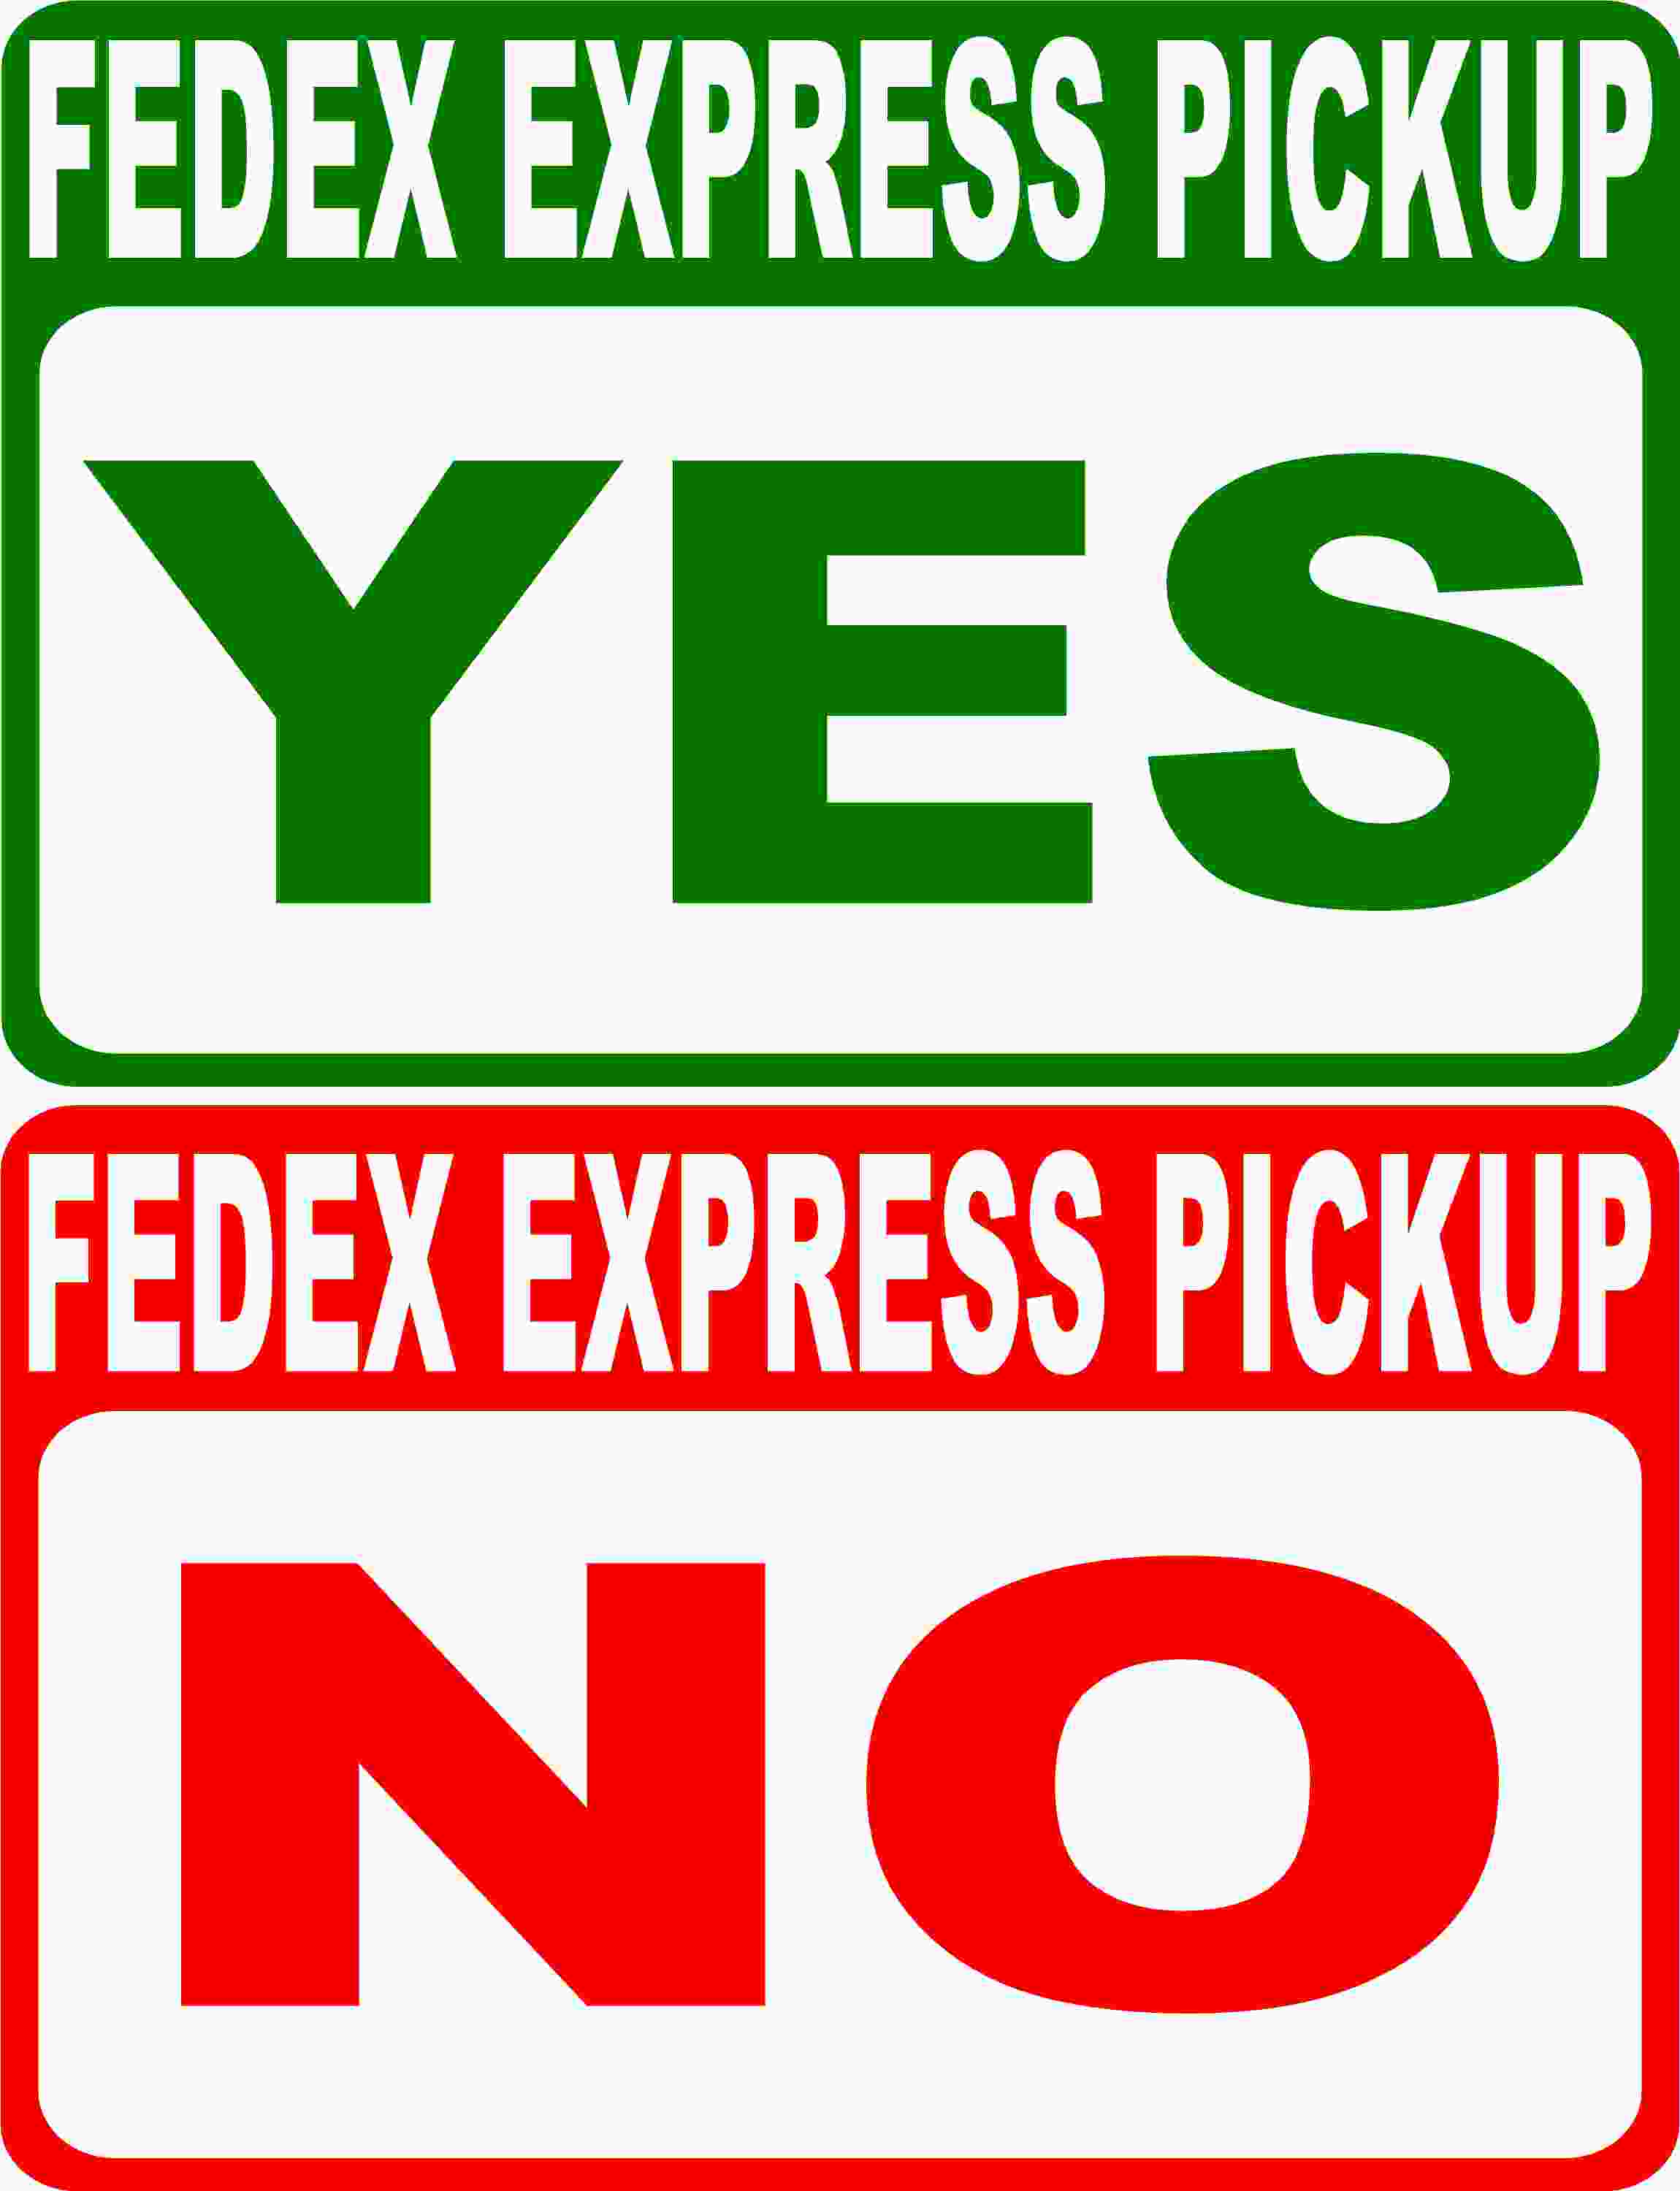 Fedex Pickup Fee >> Fedex Express Pickup No Pick Up Yes Pick Up Magnetic Signs Two Pack 1 Of Each Fed Ex